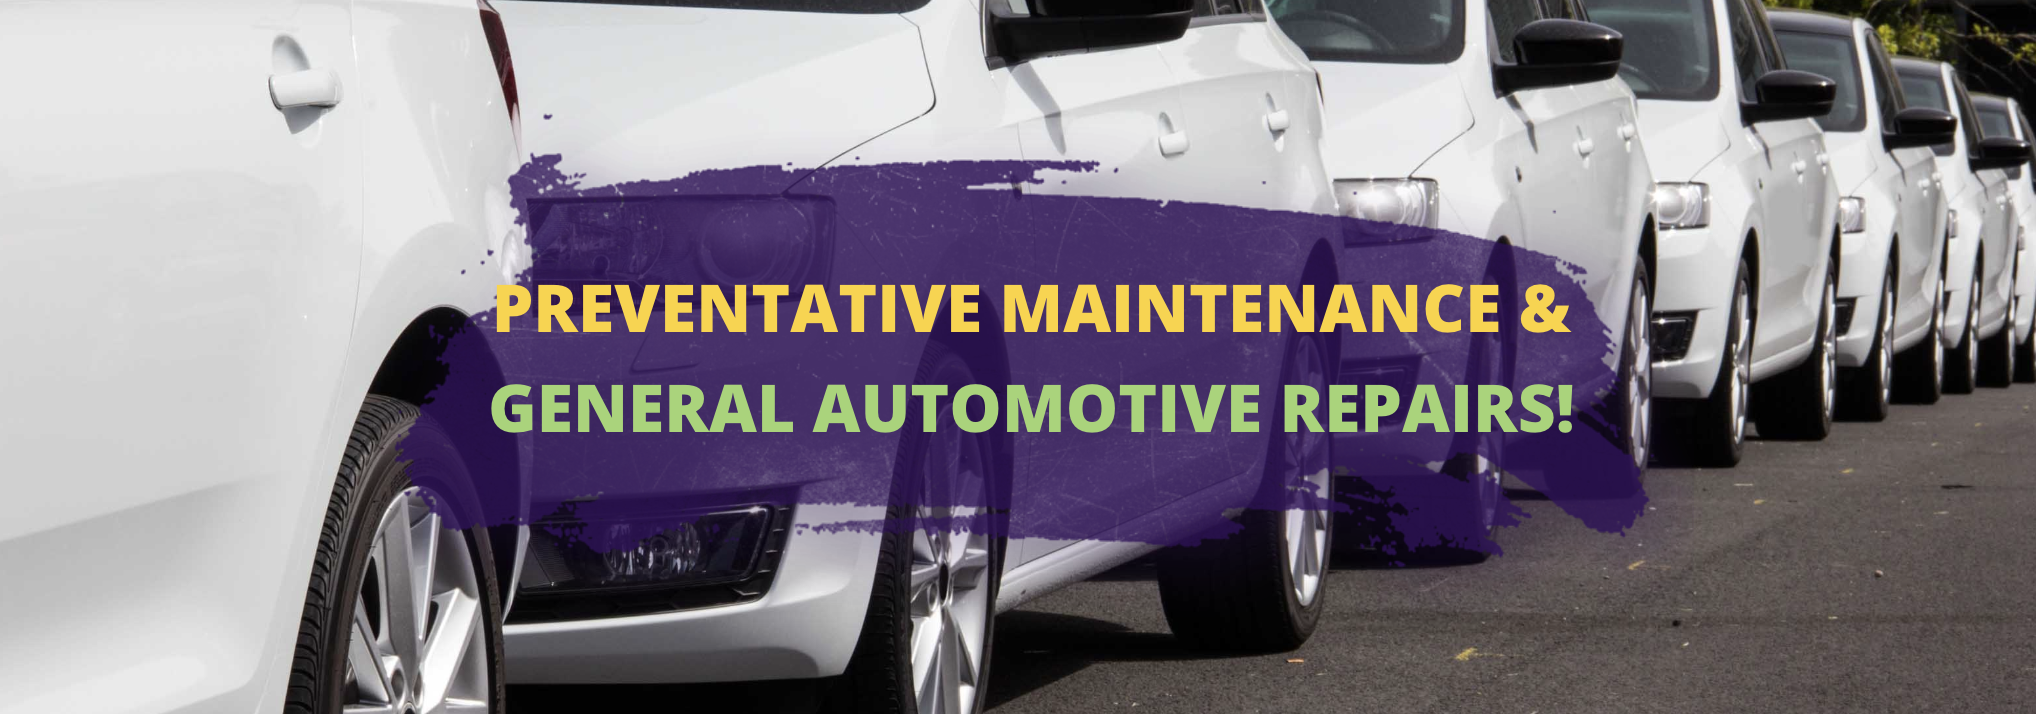 Dale's Auto Repair is a recommended shop for all of your automotive repairs and preventative maintenance.